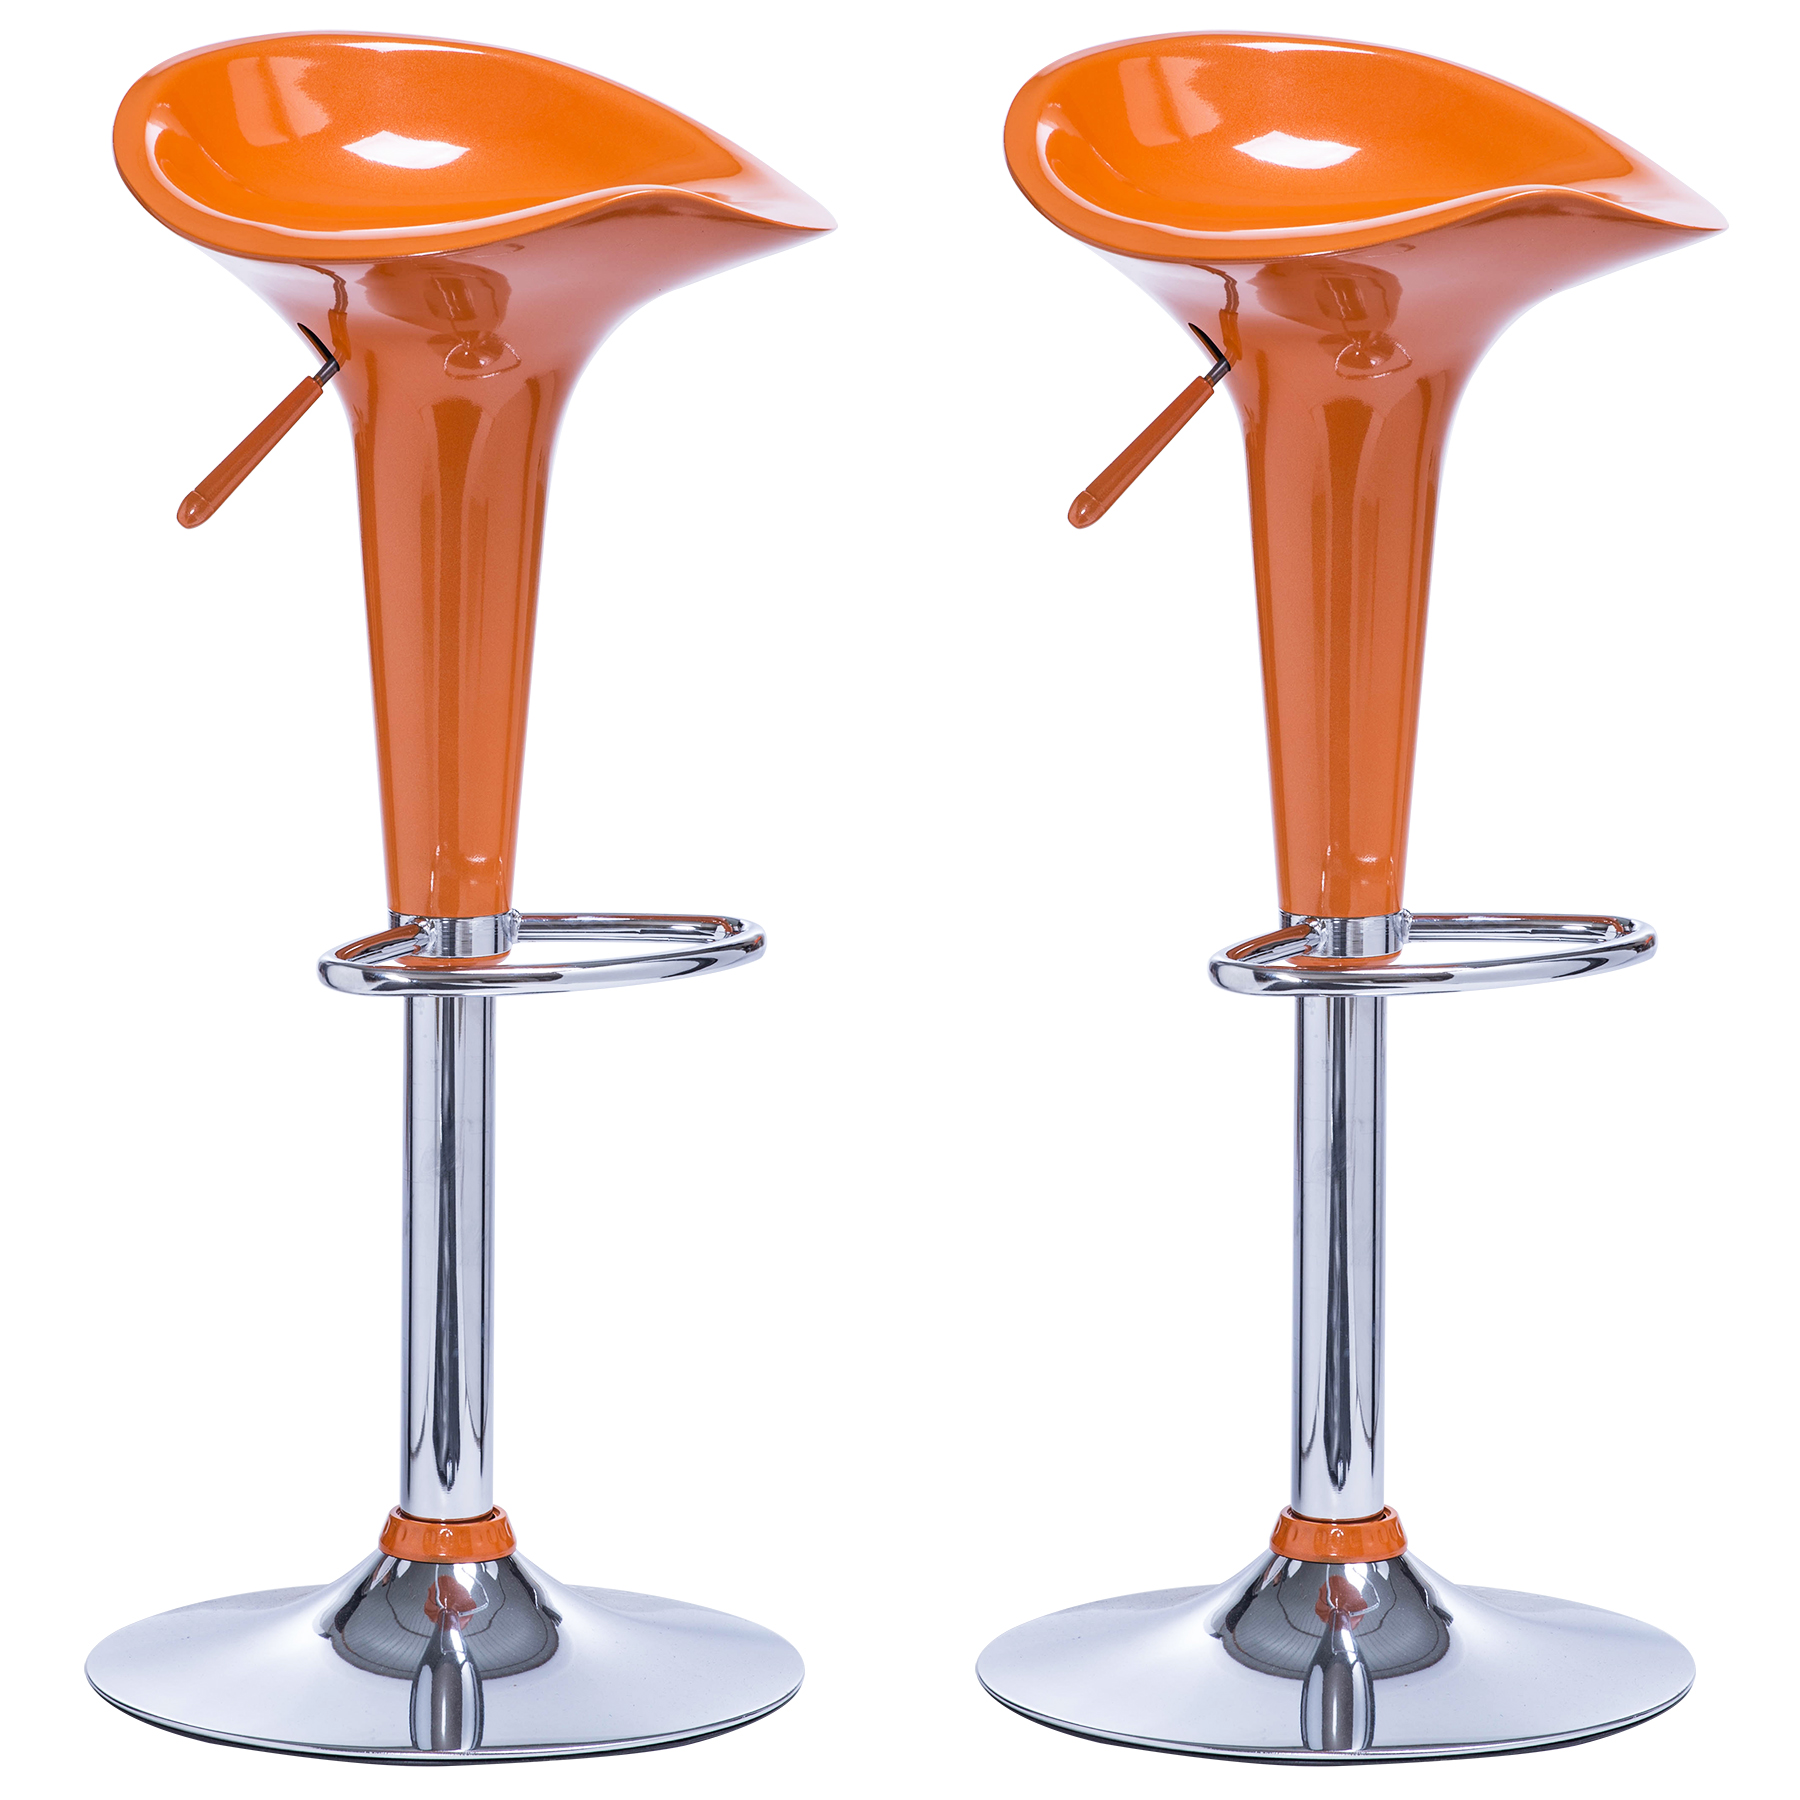 lot de 2 tabourets de bar r glable en plastique chaise de bar cuisine f025 ebay. Black Bedroom Furniture Sets. Home Design Ideas